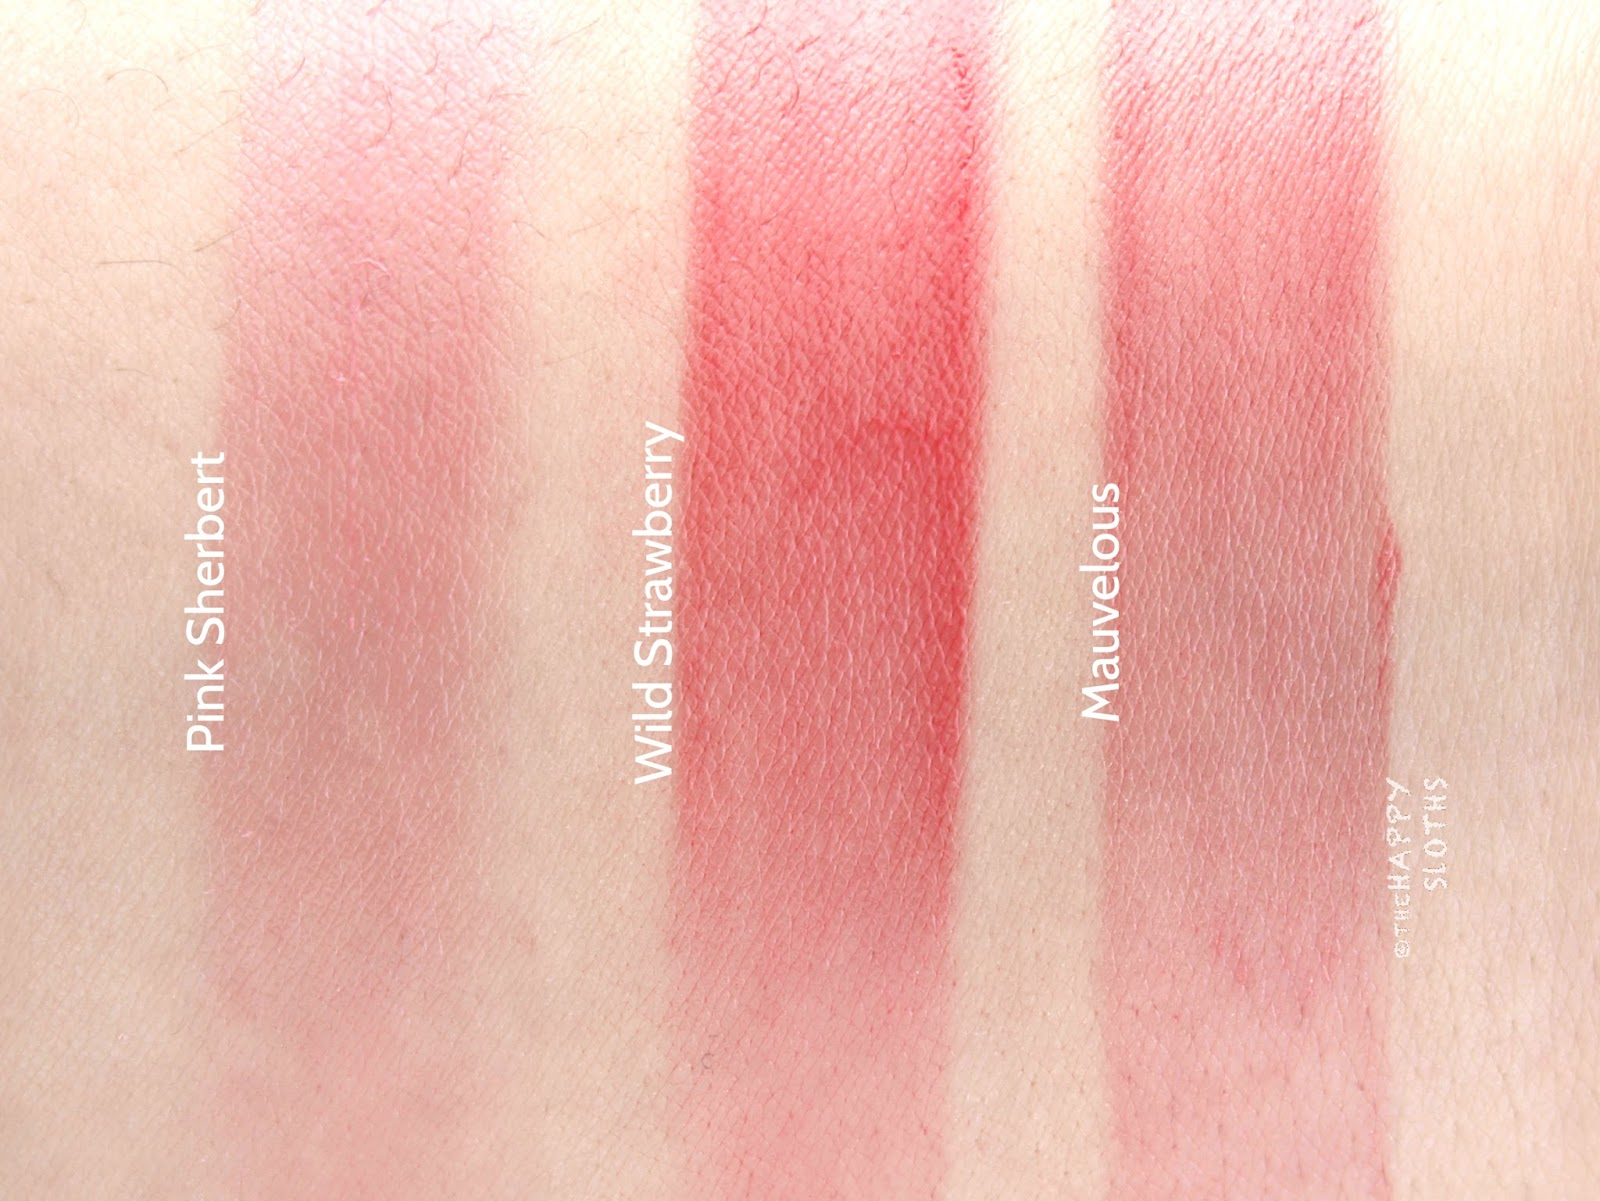 Clinique Crayola Chubby Stick Moisturizing Lip Colour Balm: Review and Swatches